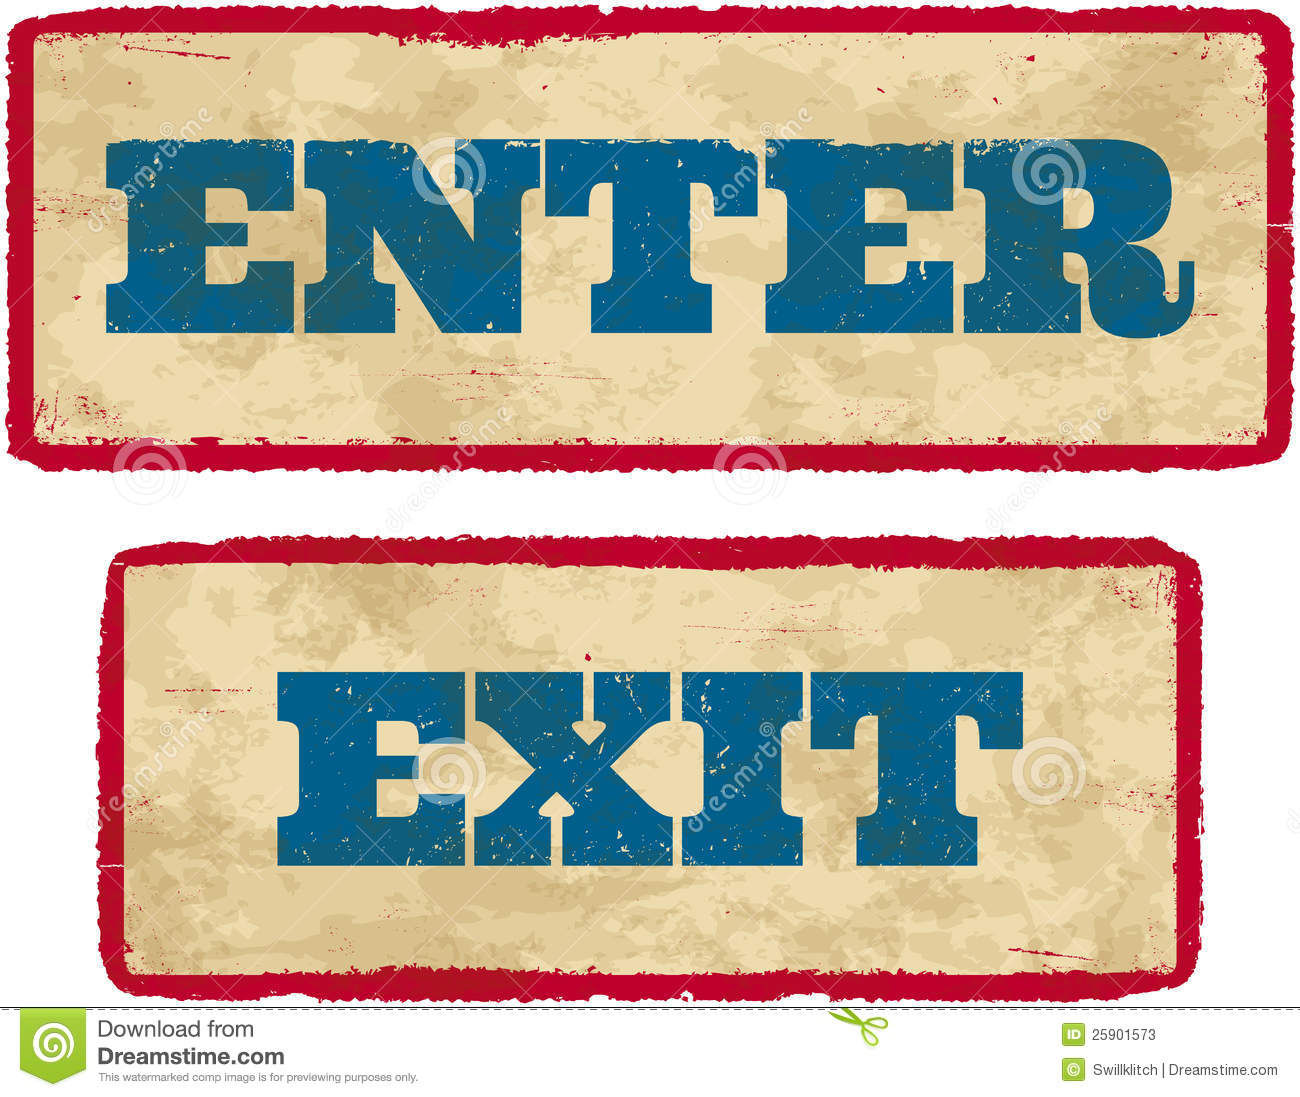 Aged enter and exit signs stock vector. Image of faded ...